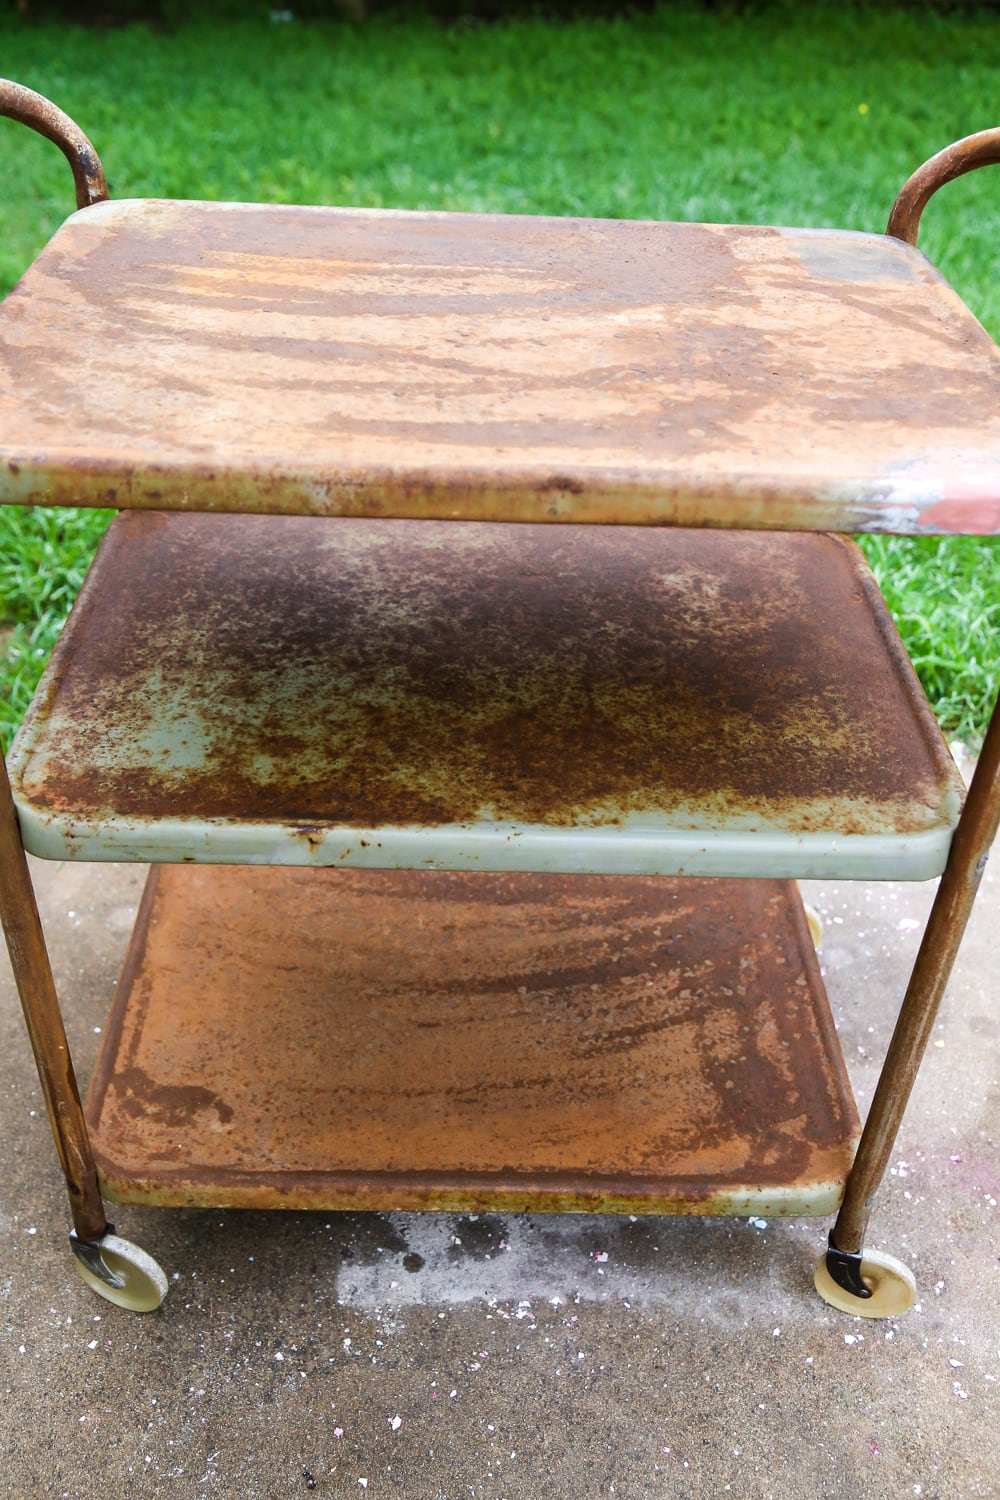 DIY Backyard Bar Cart - How to Transform Rusty Furniture